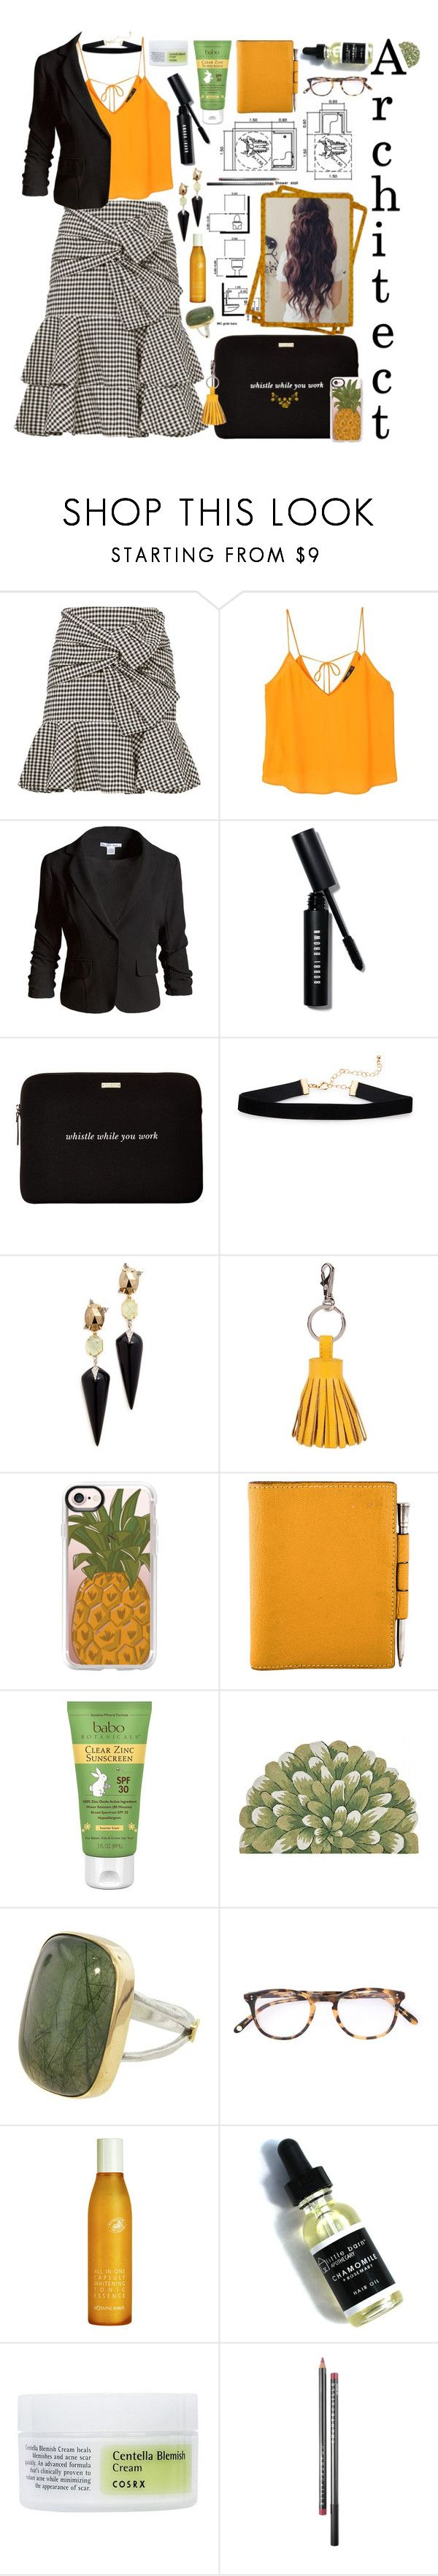 """""""//architect//"""" by maggiesmelody ❤ liked on Polyvore featuring Veronica Beard, MANGO, Sans Souci, Bobbi Brown Cosmetics, Kate Spade, Alexis Bittar, ILI, Casetify, Hermès and Babo Botanicals"""